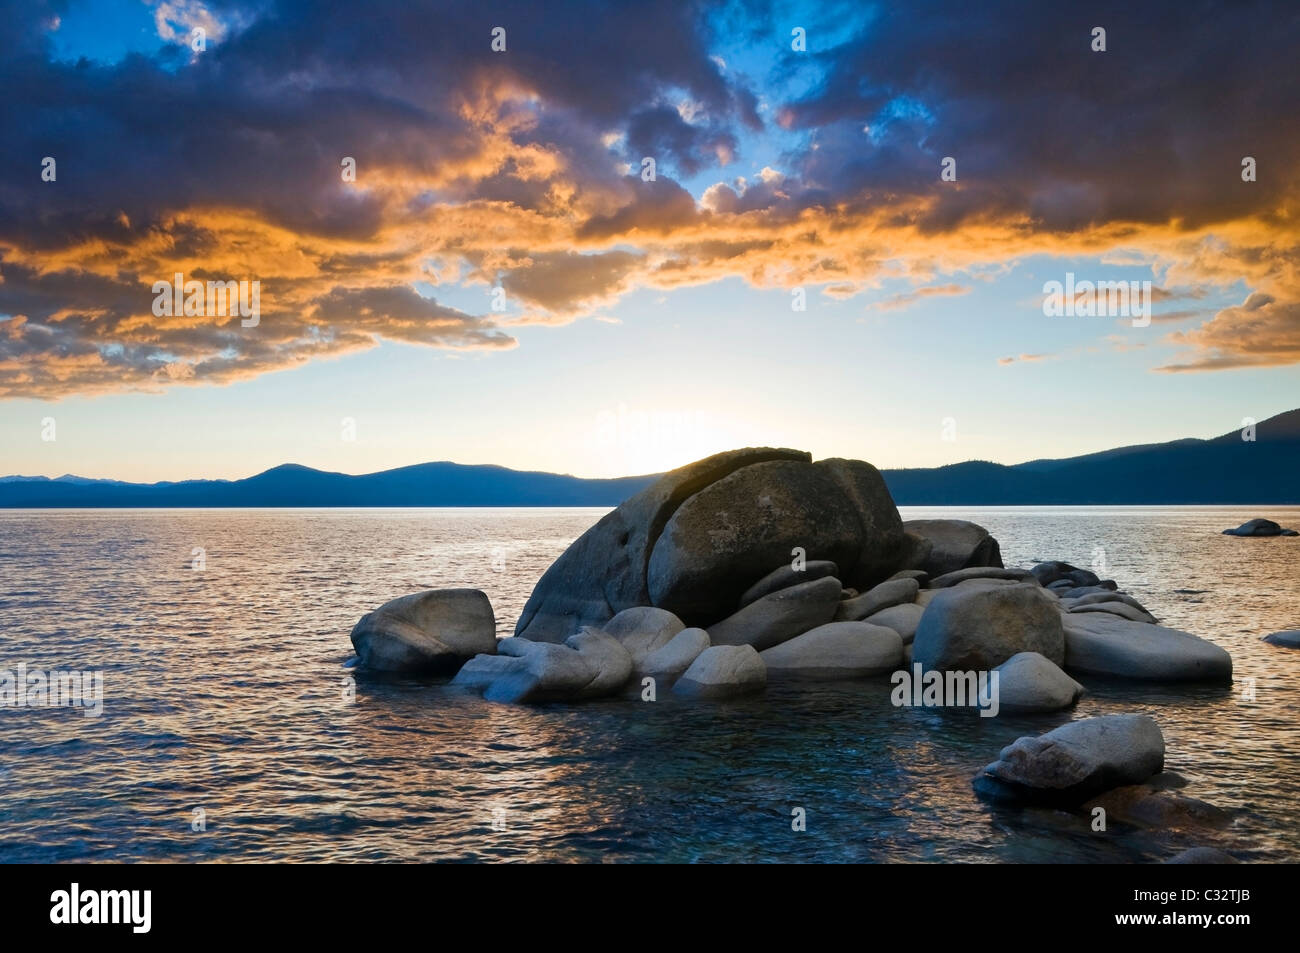 A sunset at Whale Rock on the east shore of Lake Tahoe in the summer, NV. - Stock Image